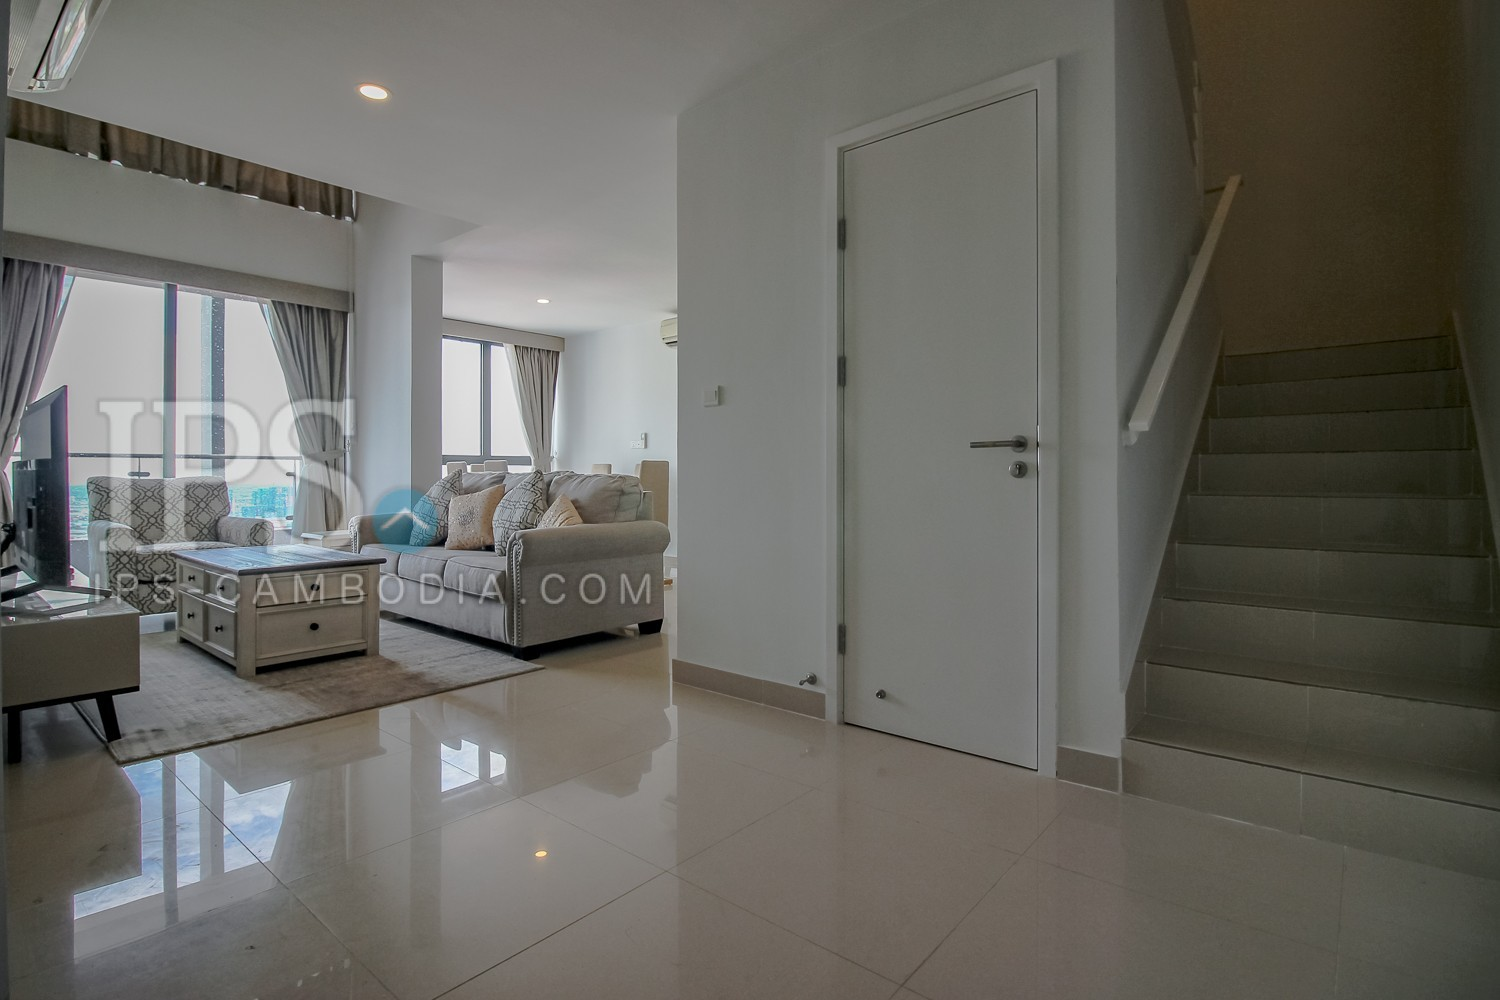 3 Bedroom Duplex Penthouse For Rent - Tonle Bassac, Phnom Penh